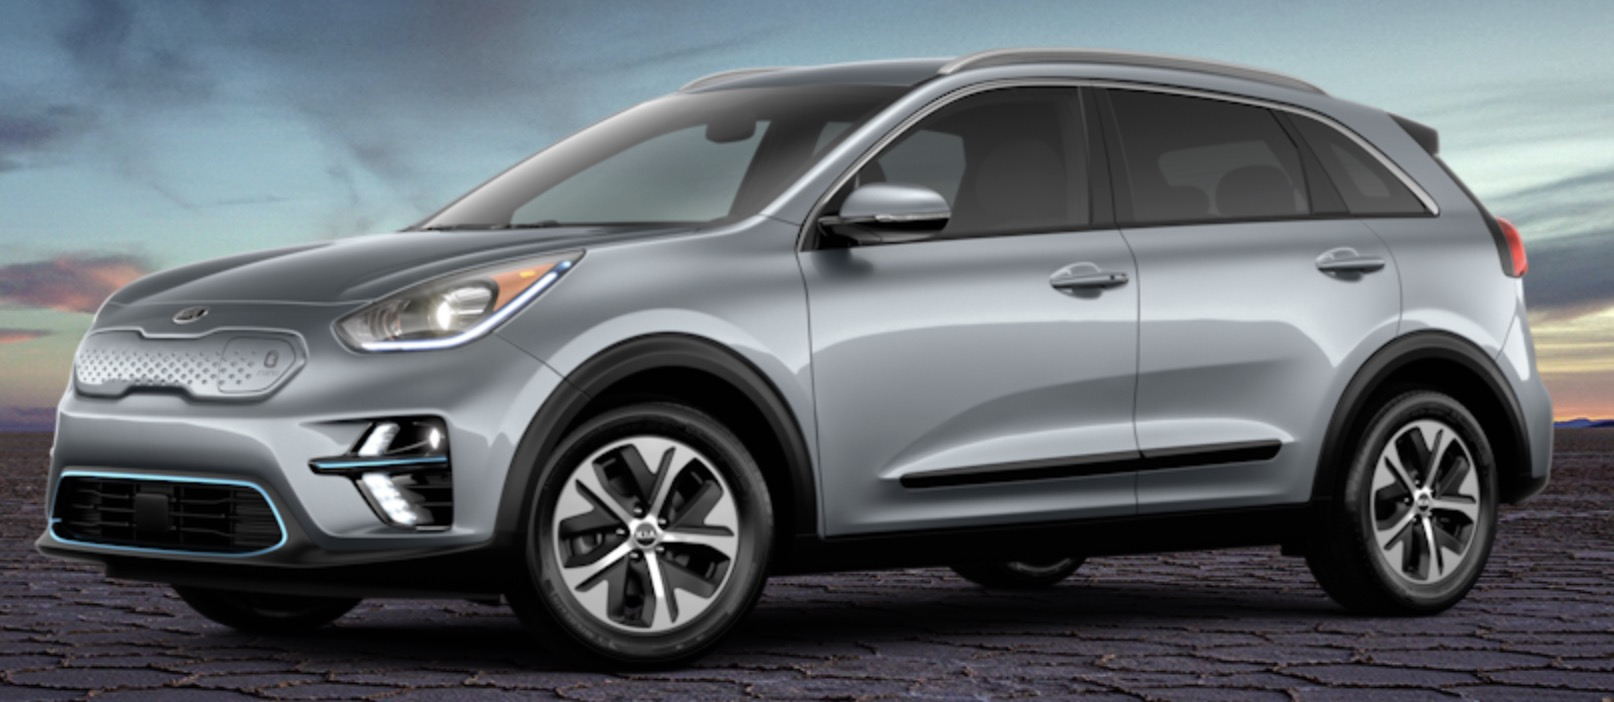 Side view of 2019 Kia Niro electric car in aluminum silver color against a sky at dusk.